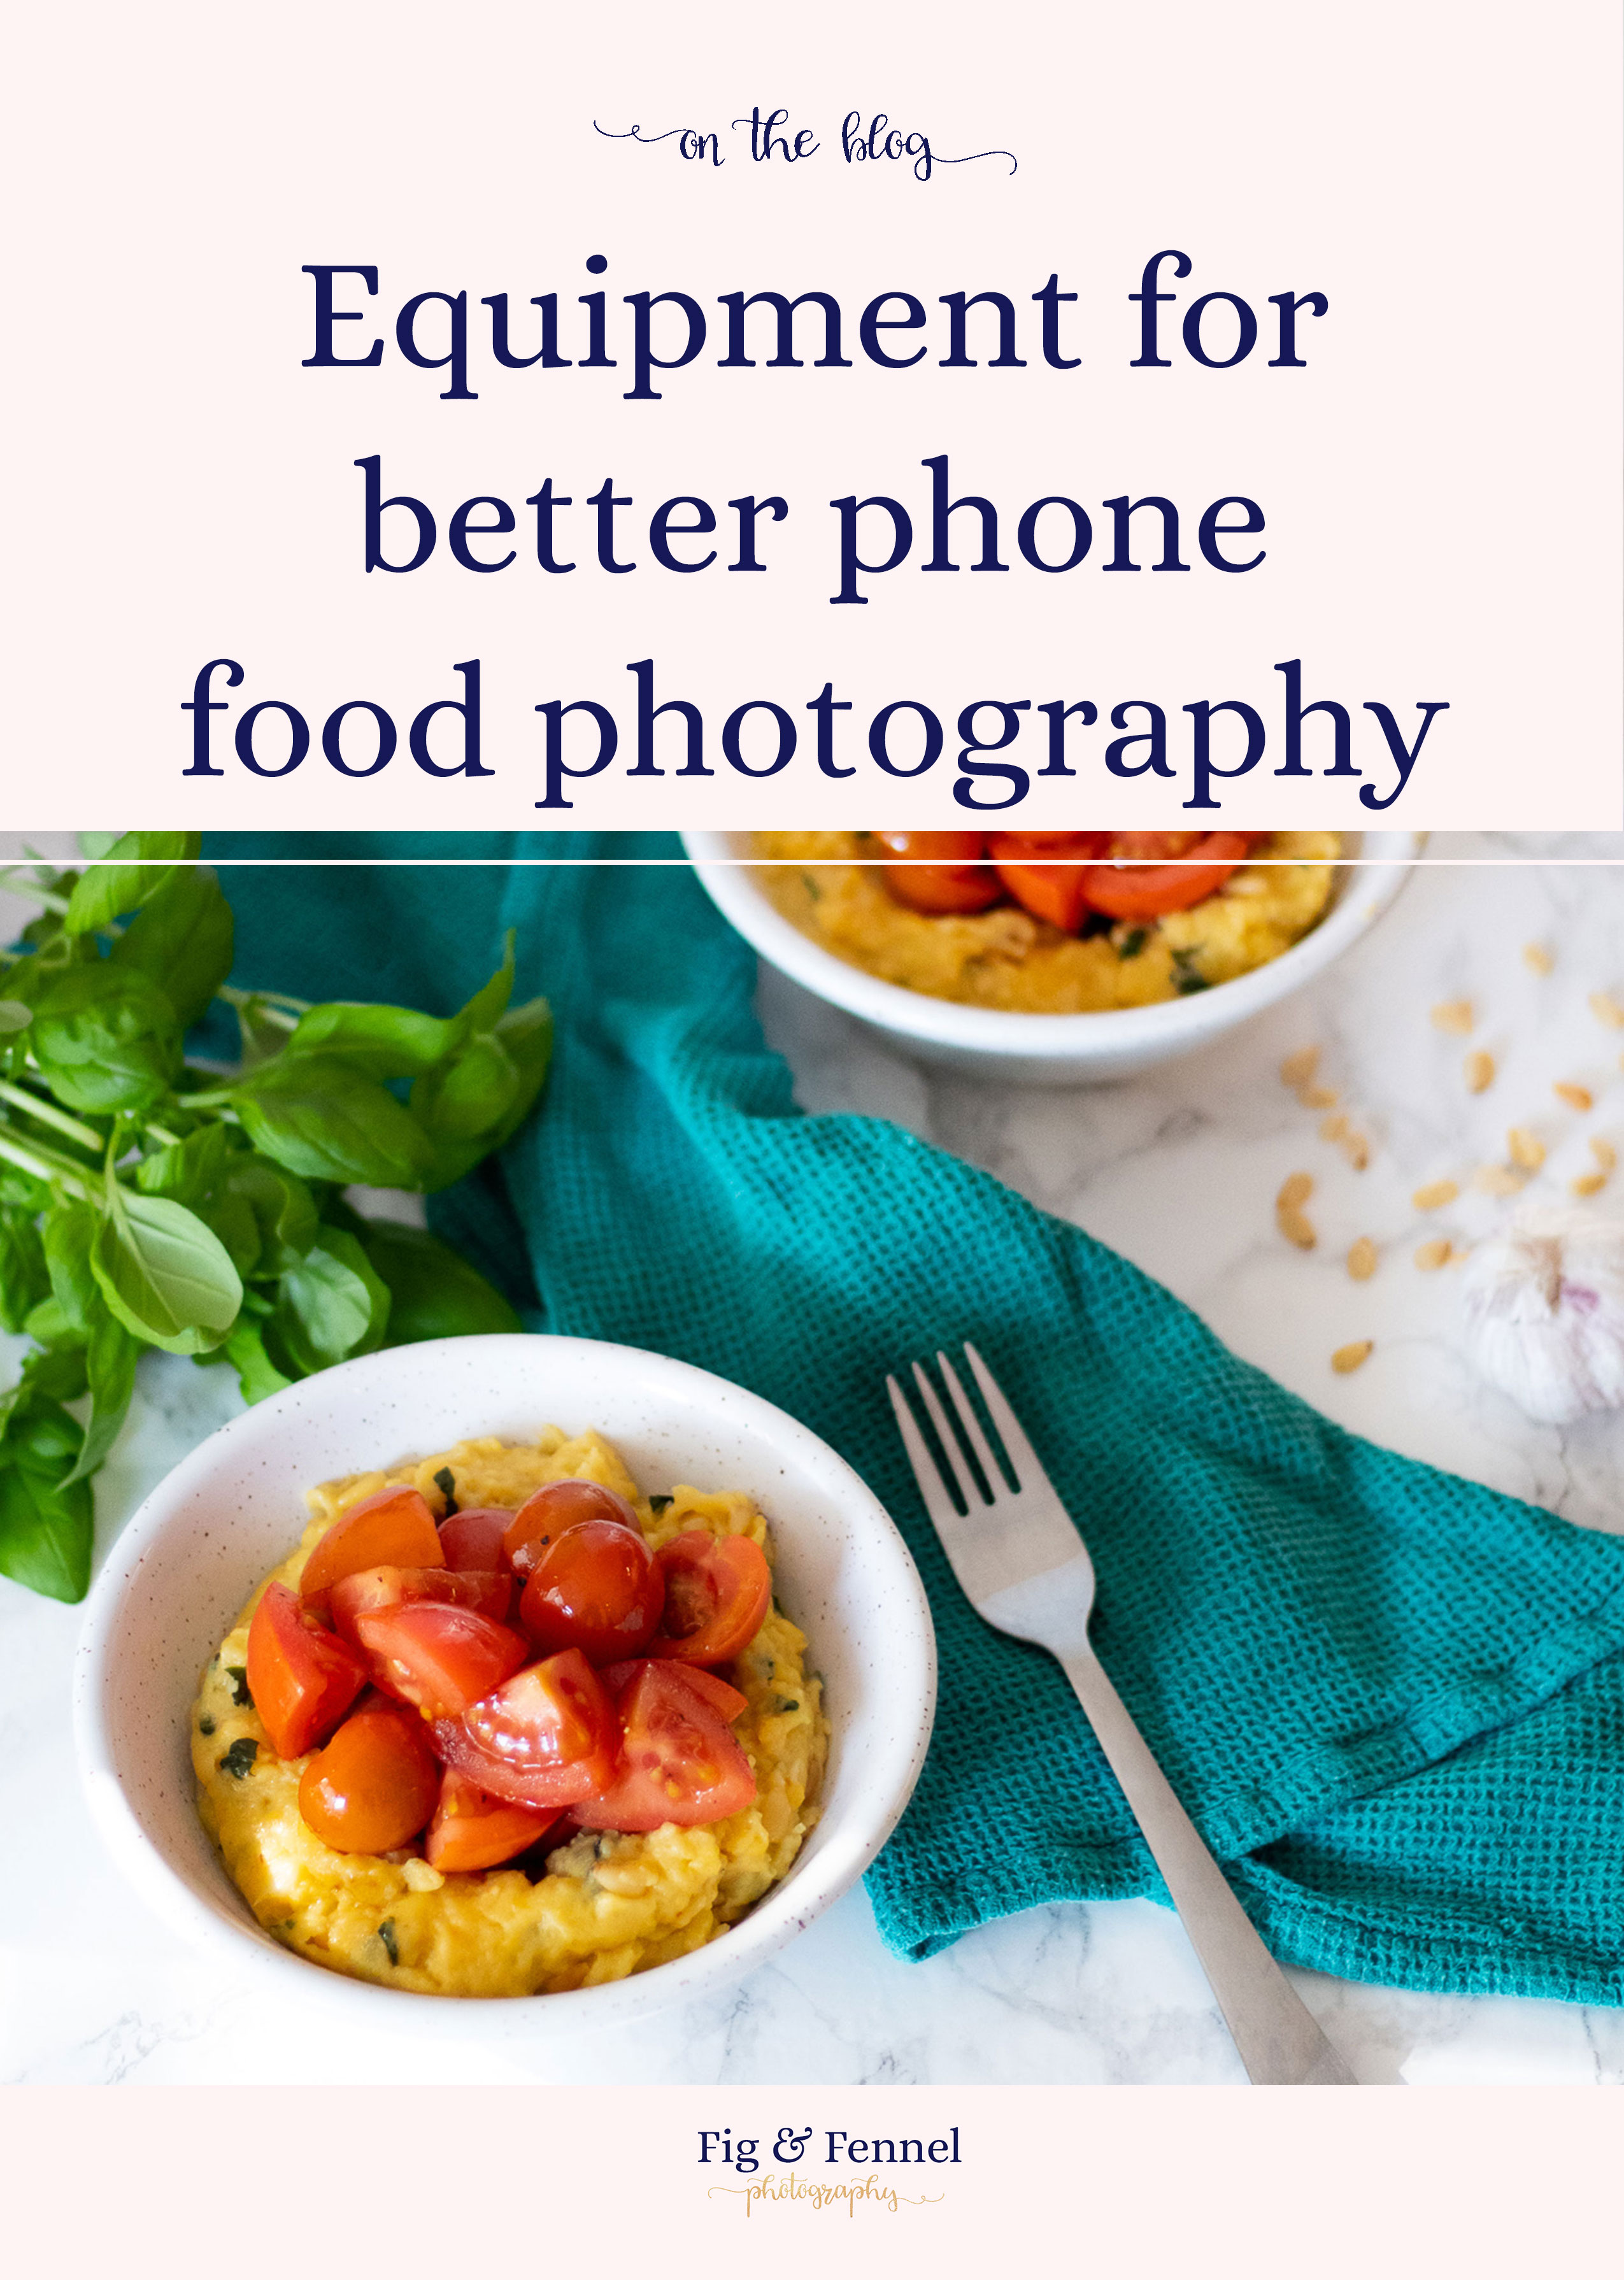 Equipment for better phone food photography